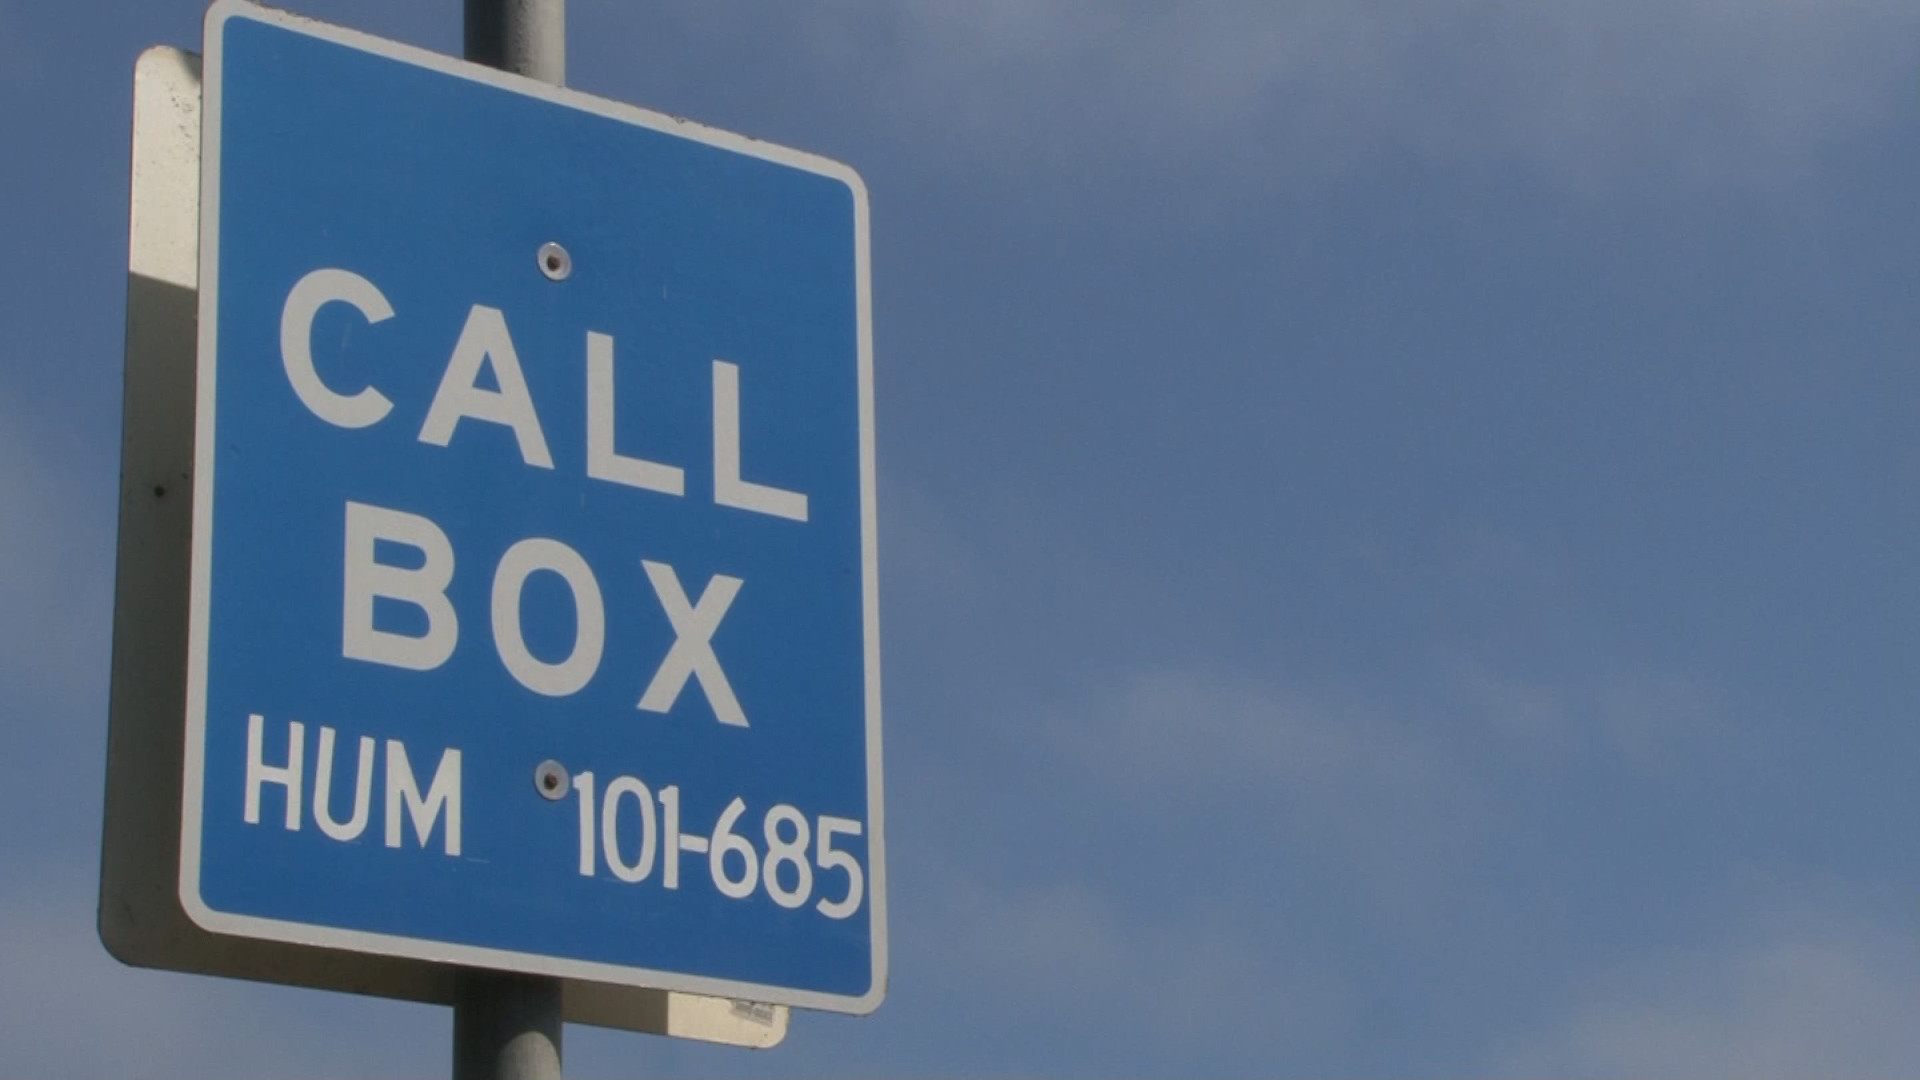 Emergency call box use continues in the cell phone age  KIEMTV  Redwood News